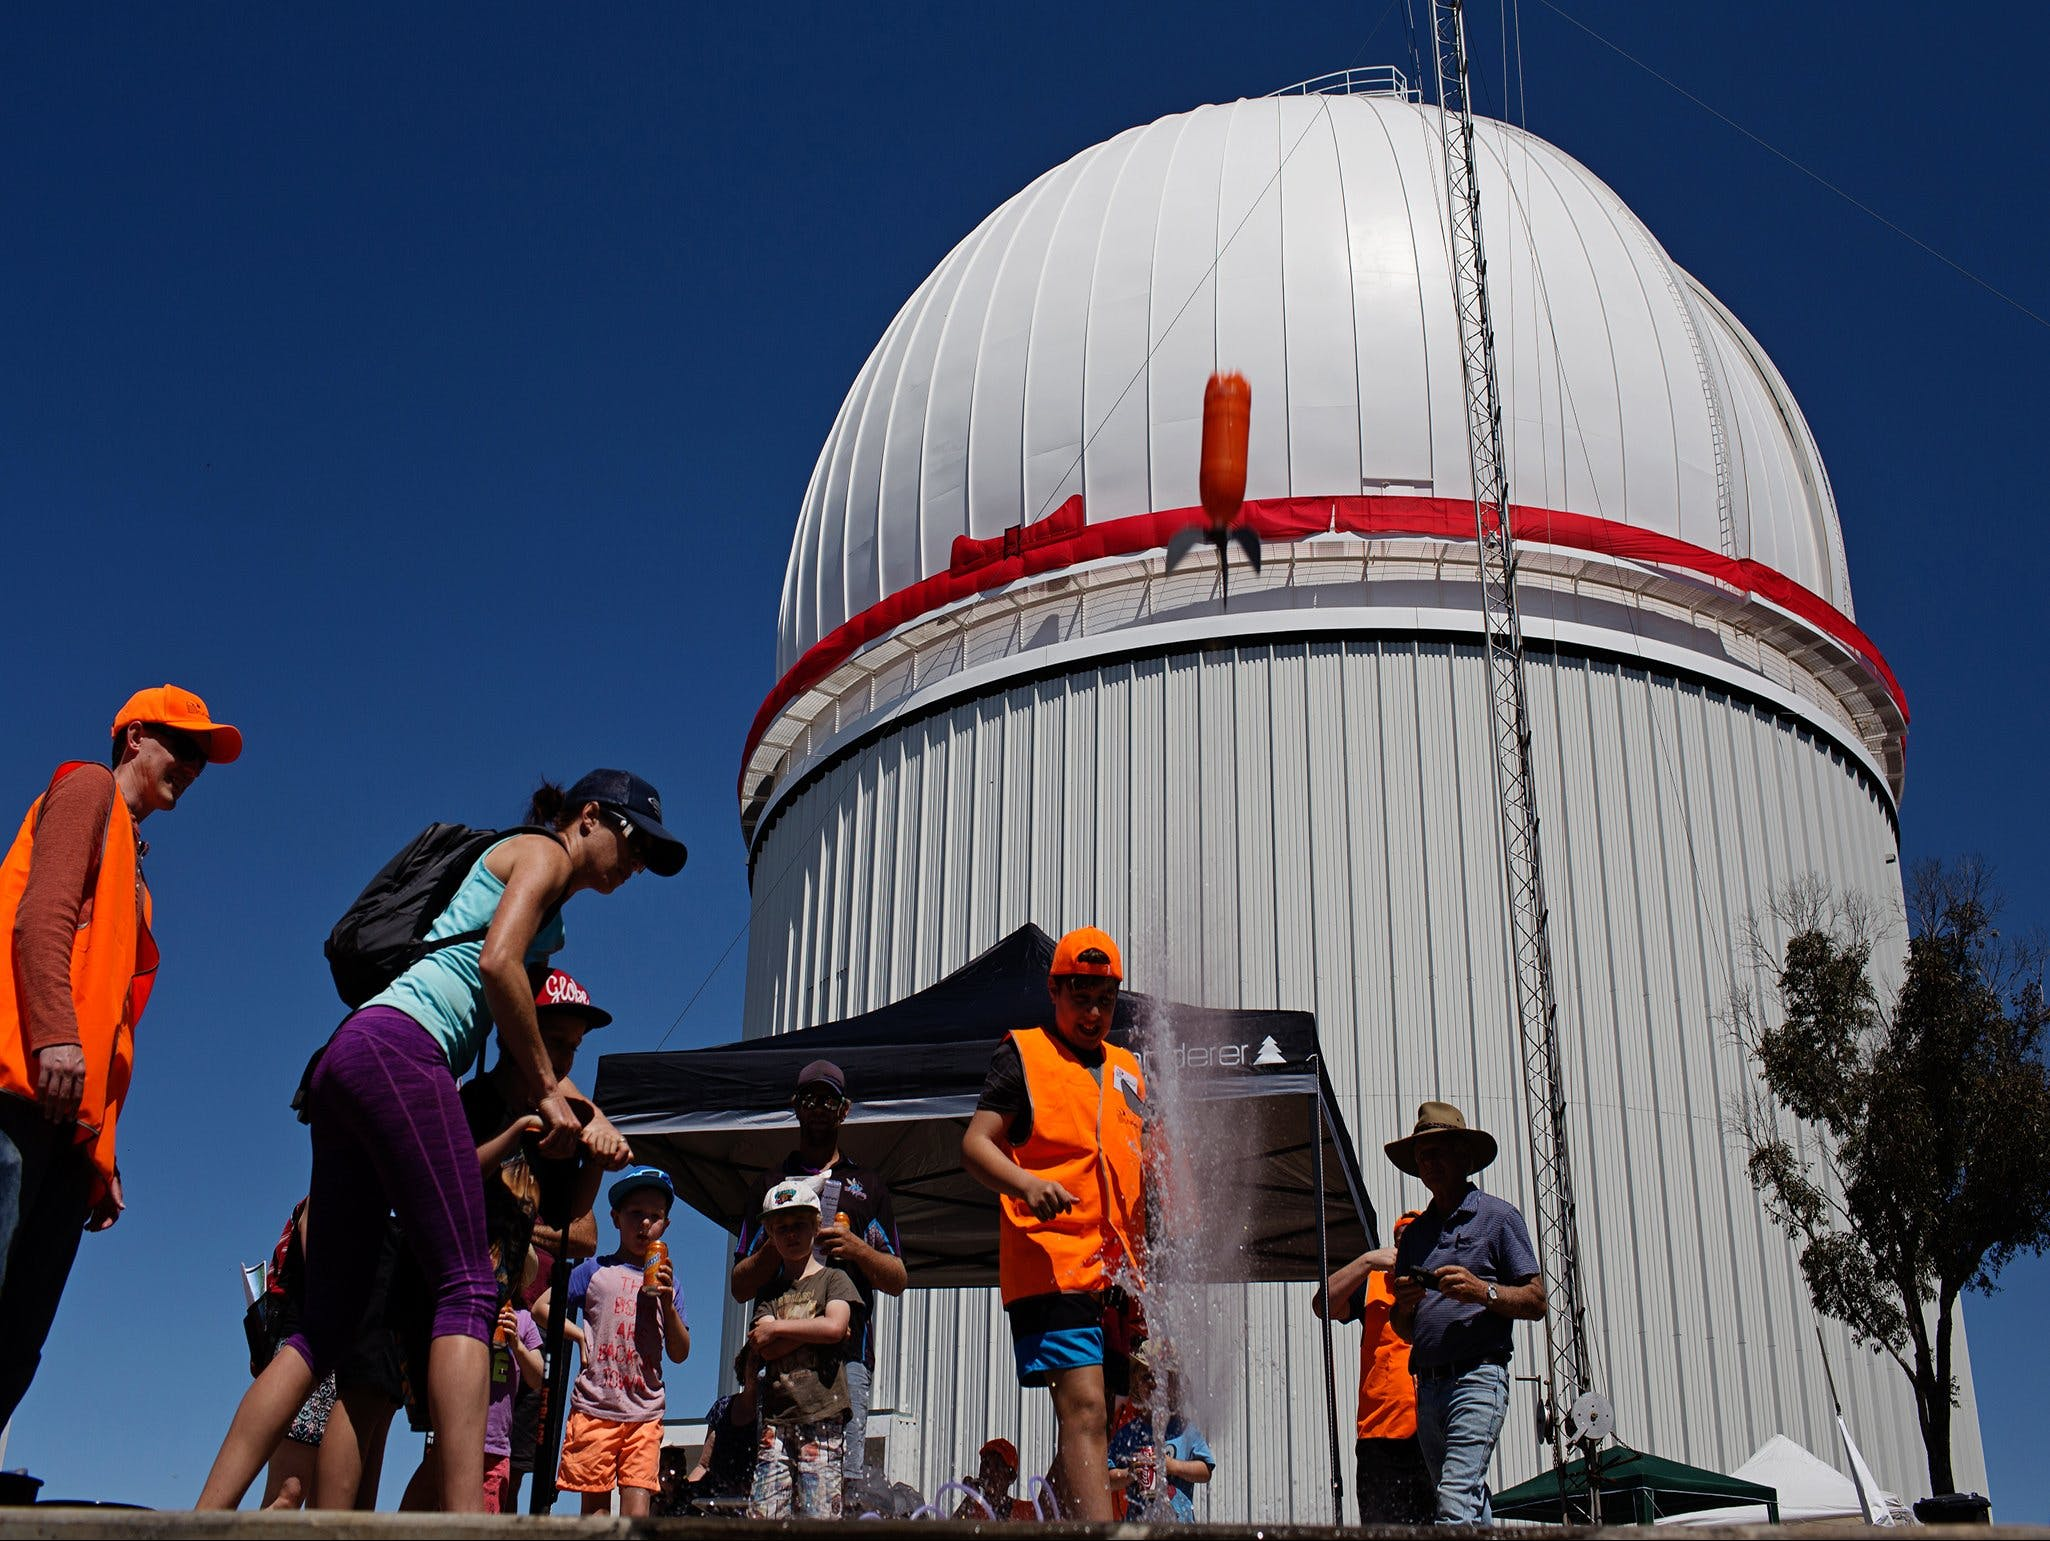 Siding Spring Observatory Open Day - Cancelled due to COVID 19 - Townsville Tourism